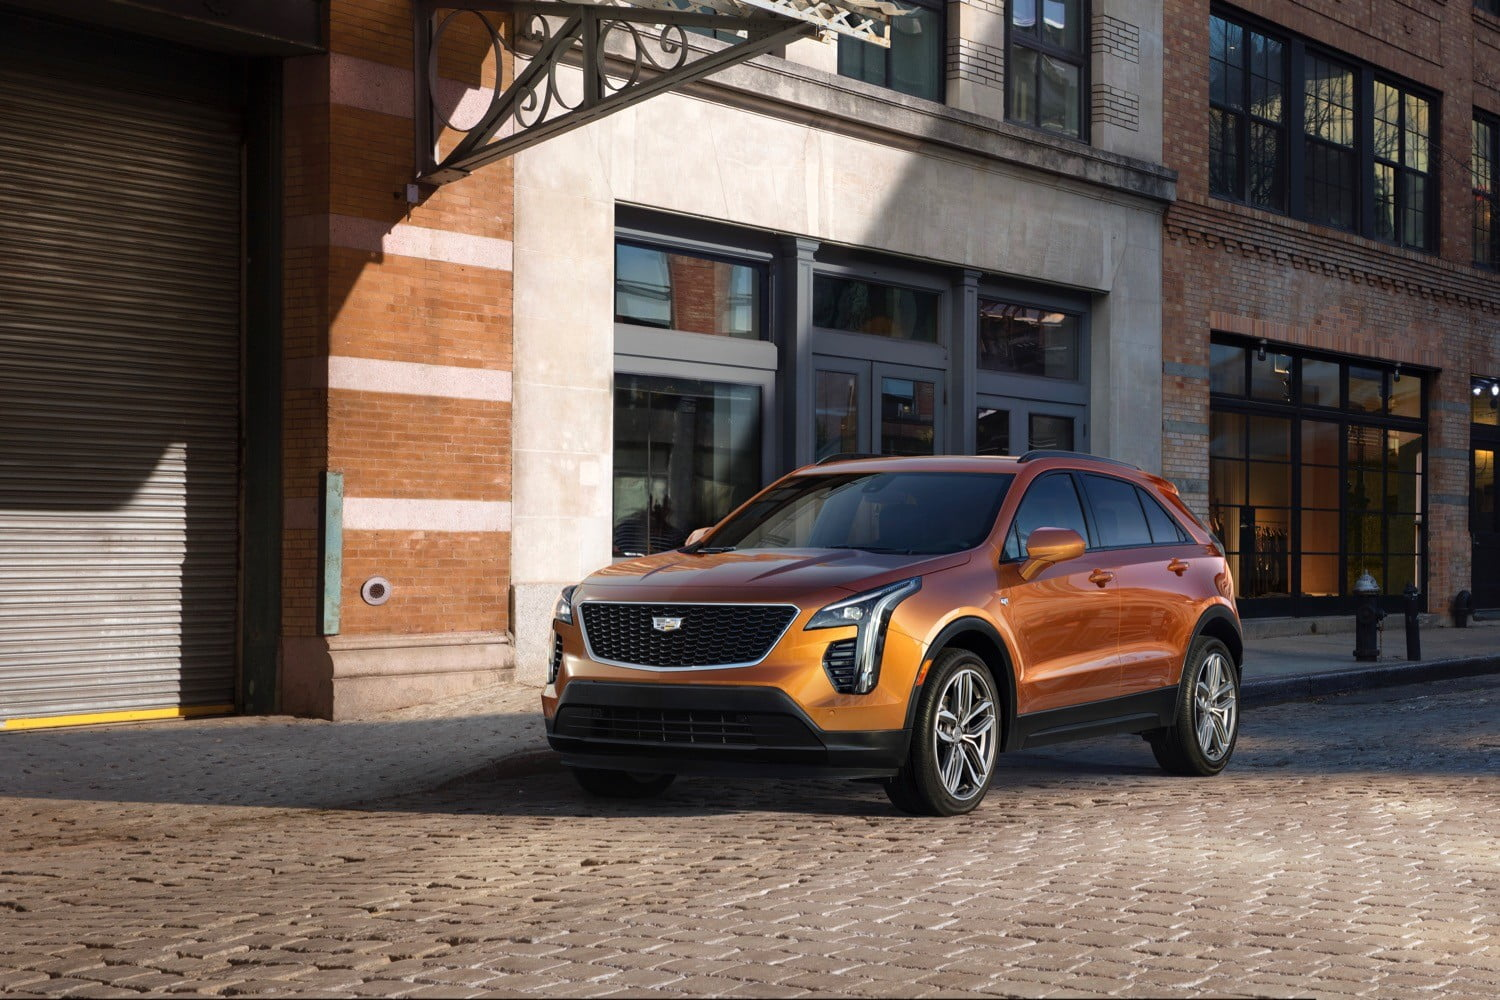 Cadillac Xt4 Will Get Super Cruise Just Not Right Away Digital Trends